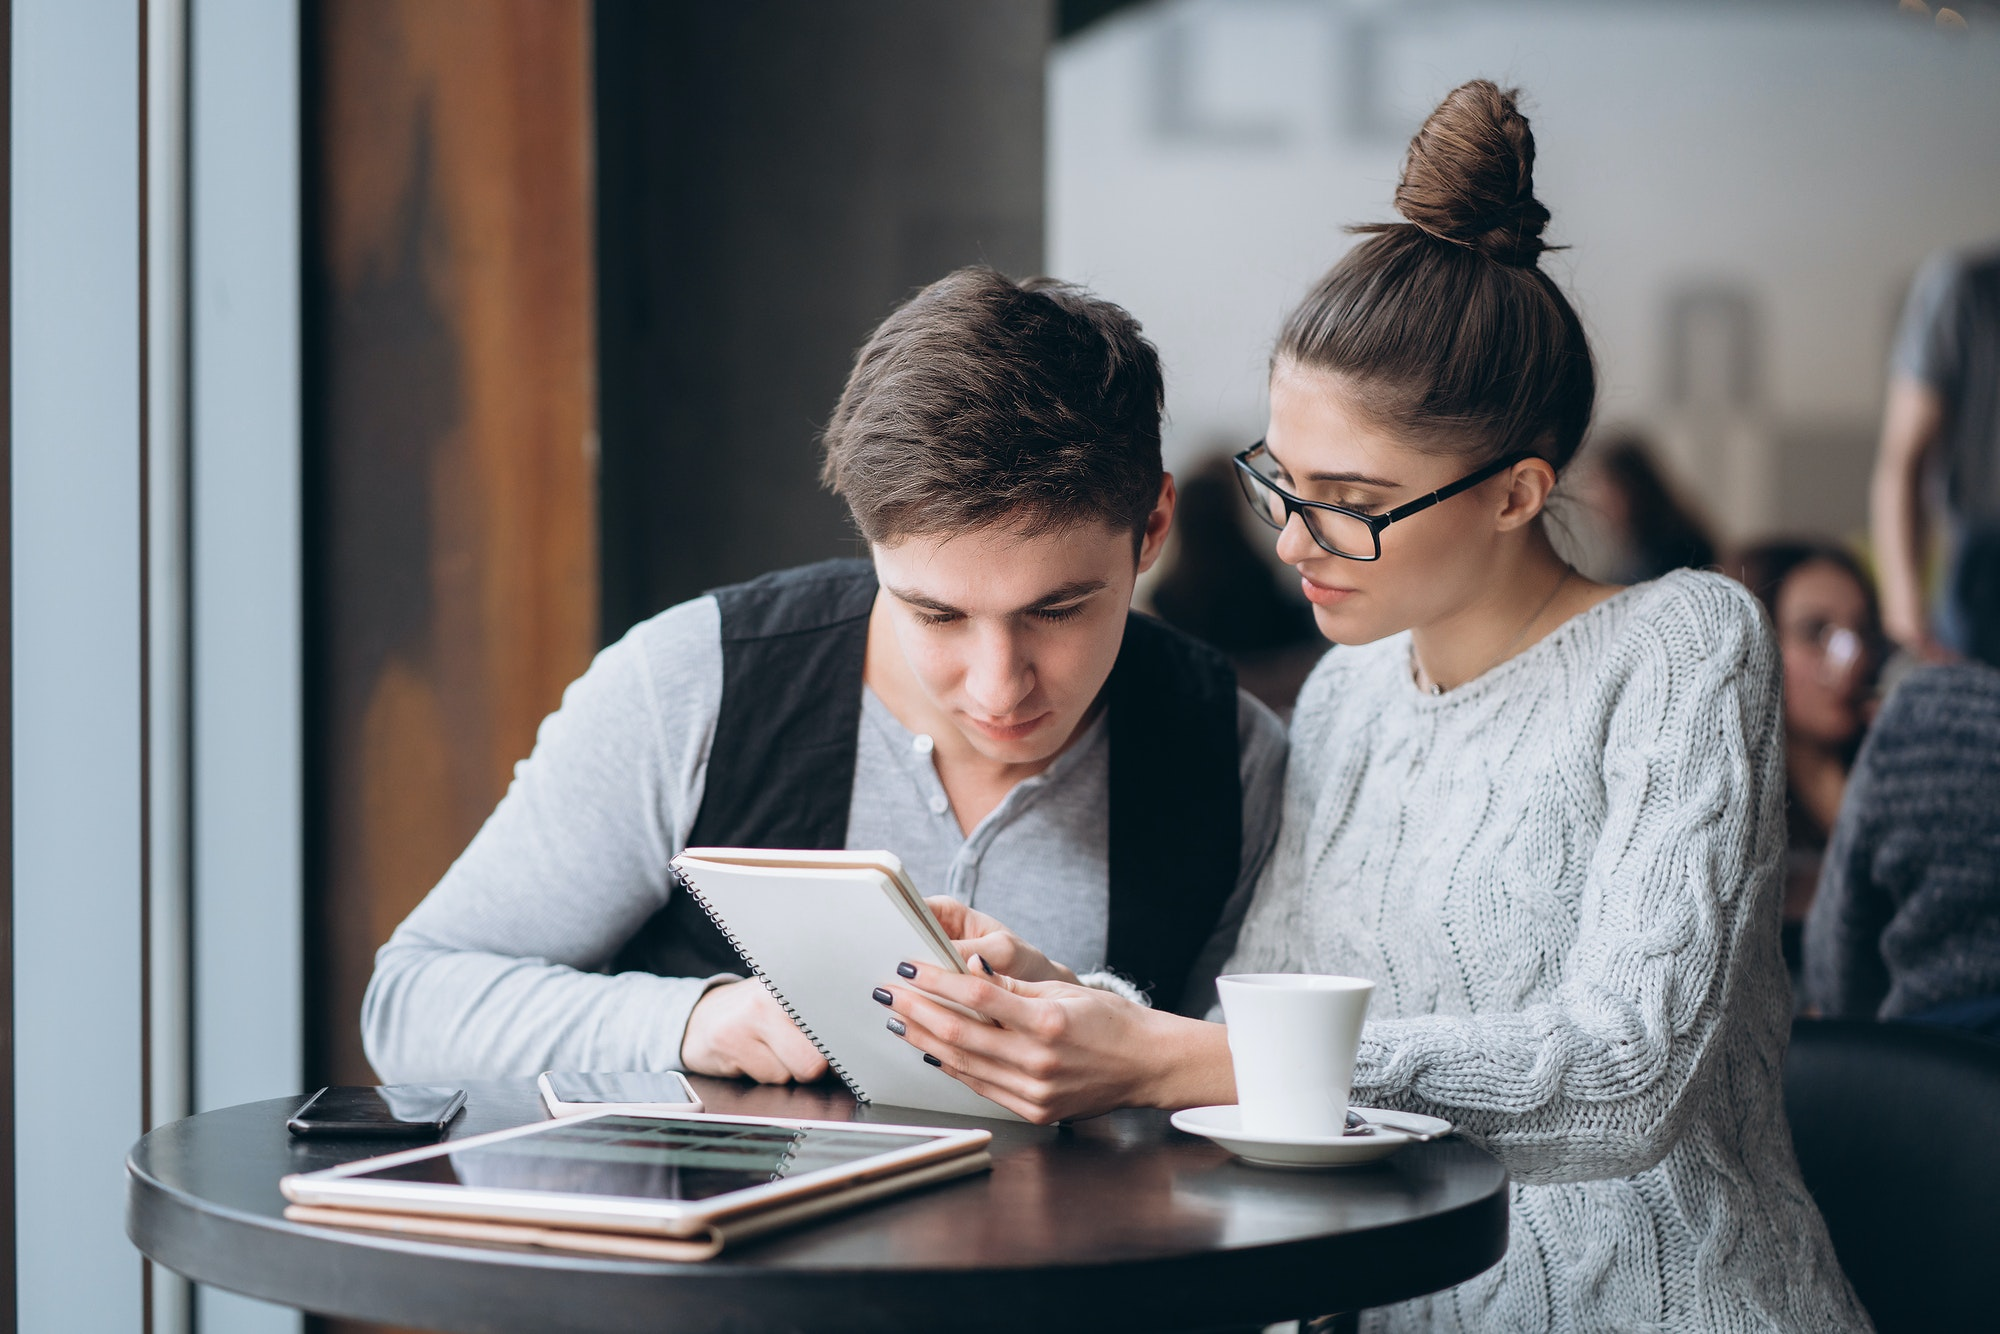 Guy and girl at a meeting in a cafe